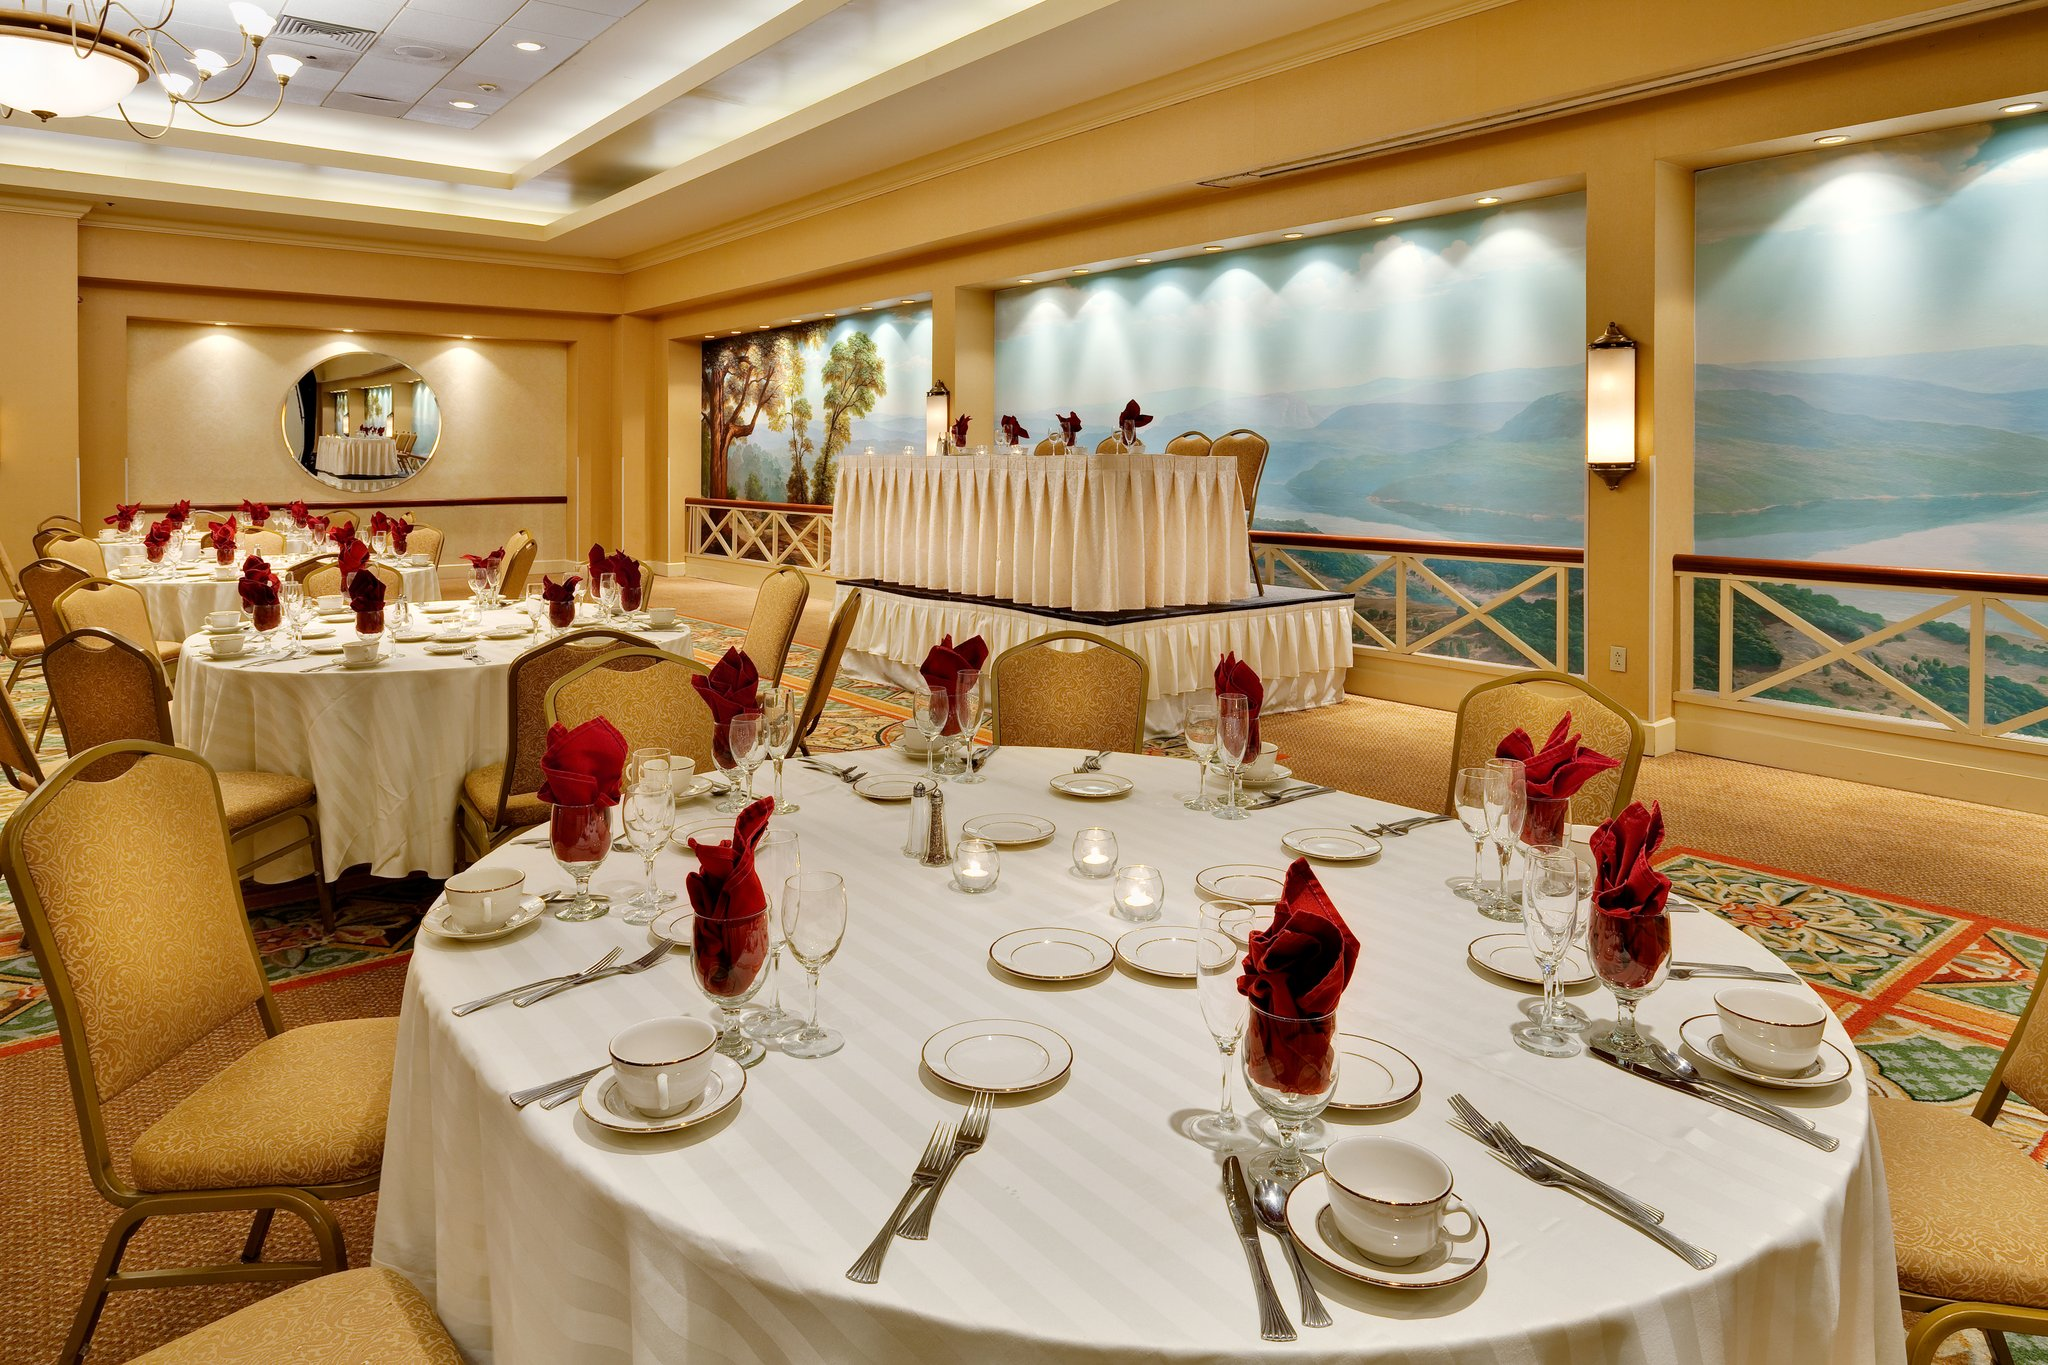 Share My Space At Holiday Inn Allentown I 78 (Lehigh Valley) With